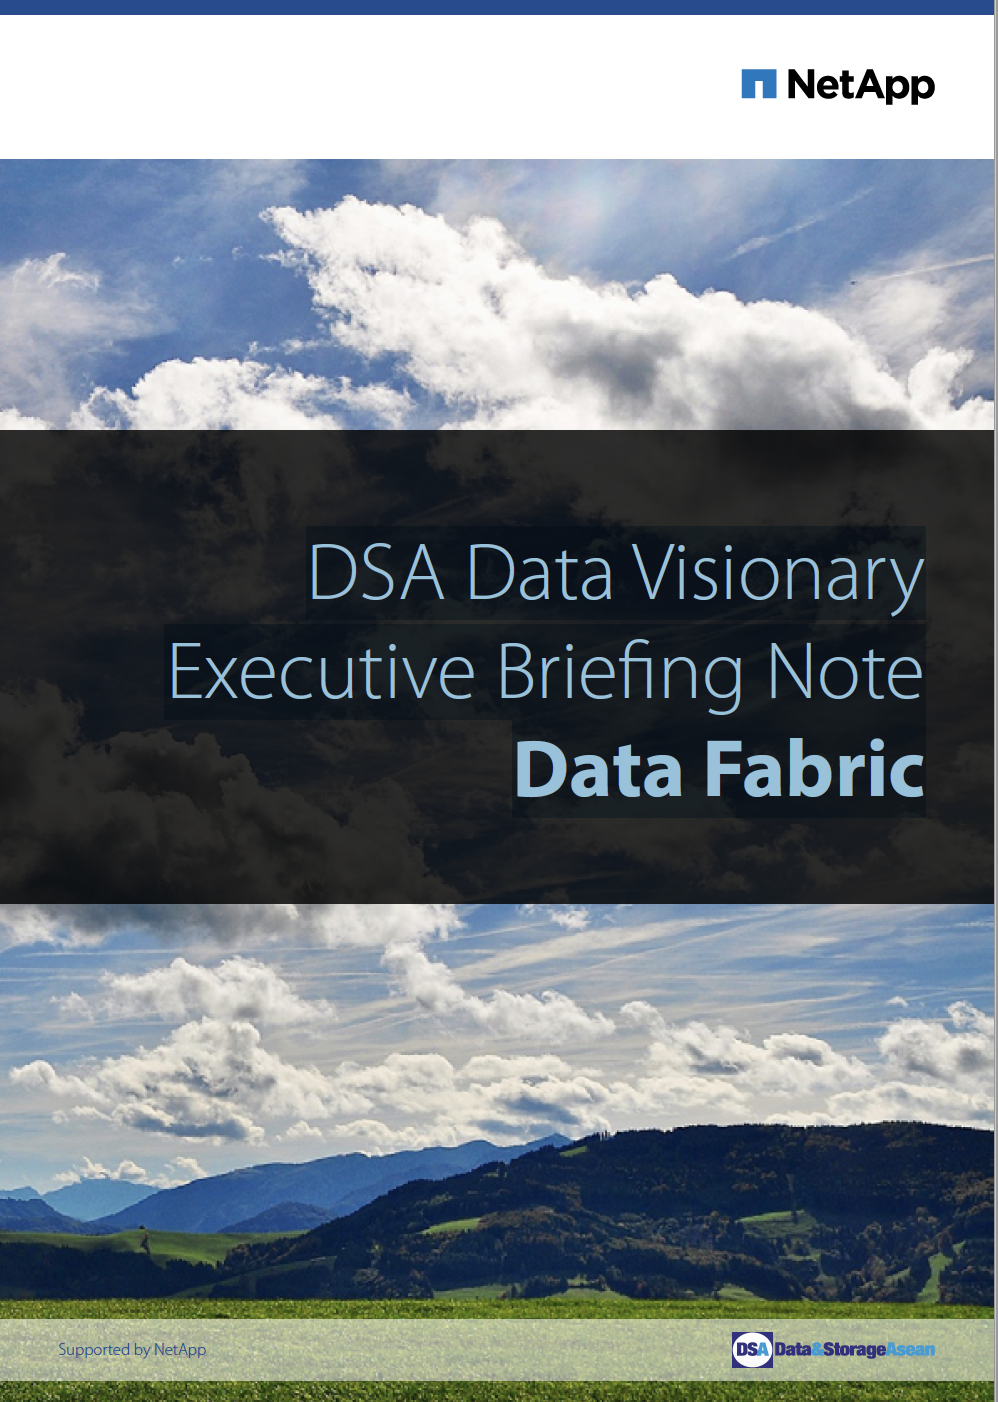 DSA Data Visionary Executive Briefing Note Data Fabric.pdf